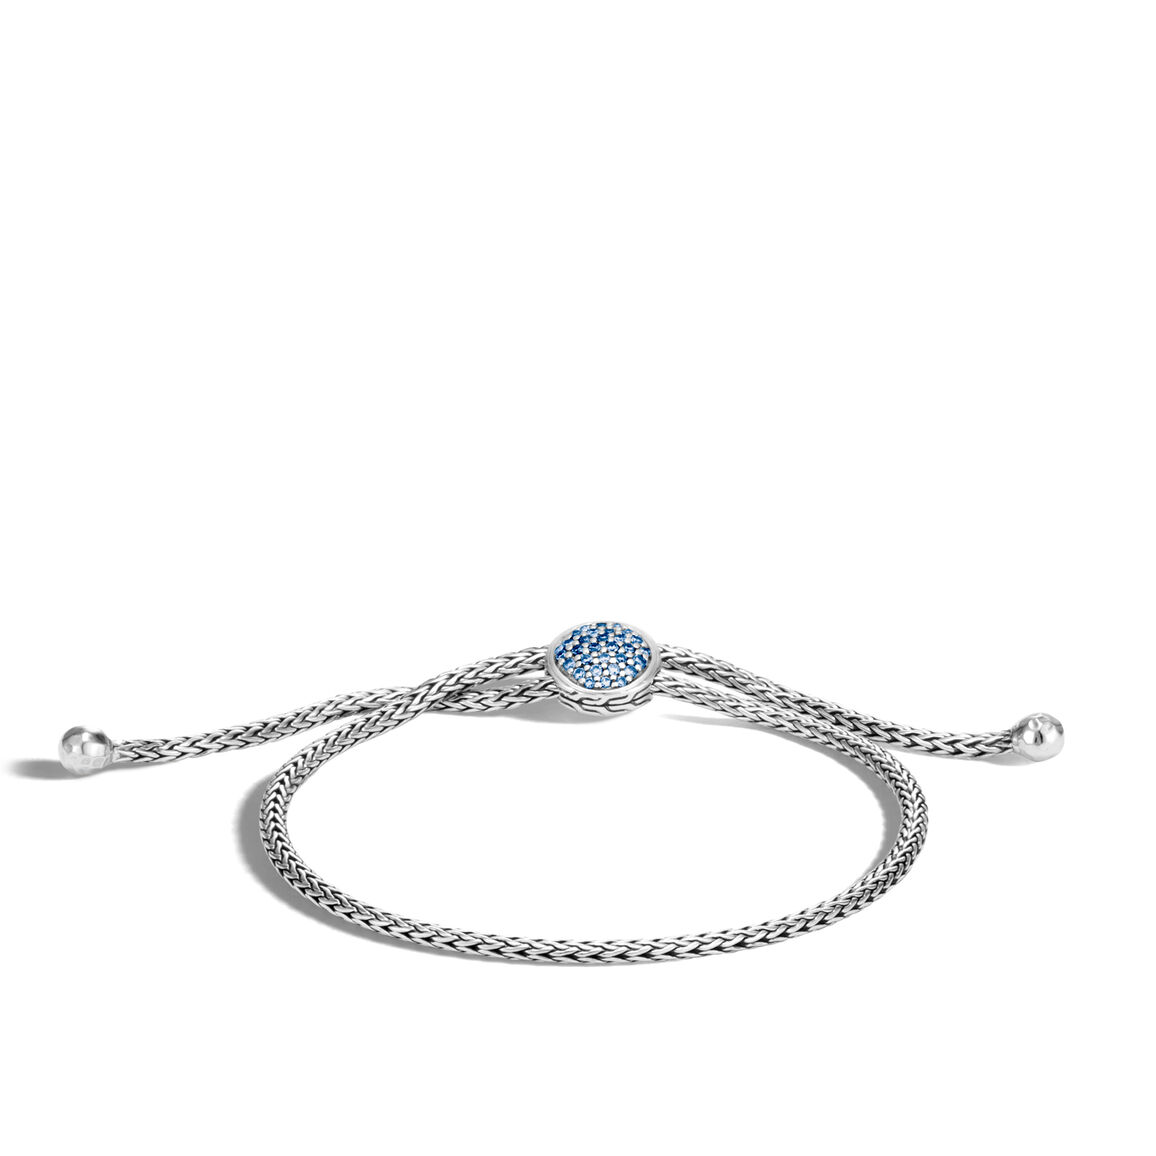 Classic Chain Pull Through Bracelet in Silver with Gemstone